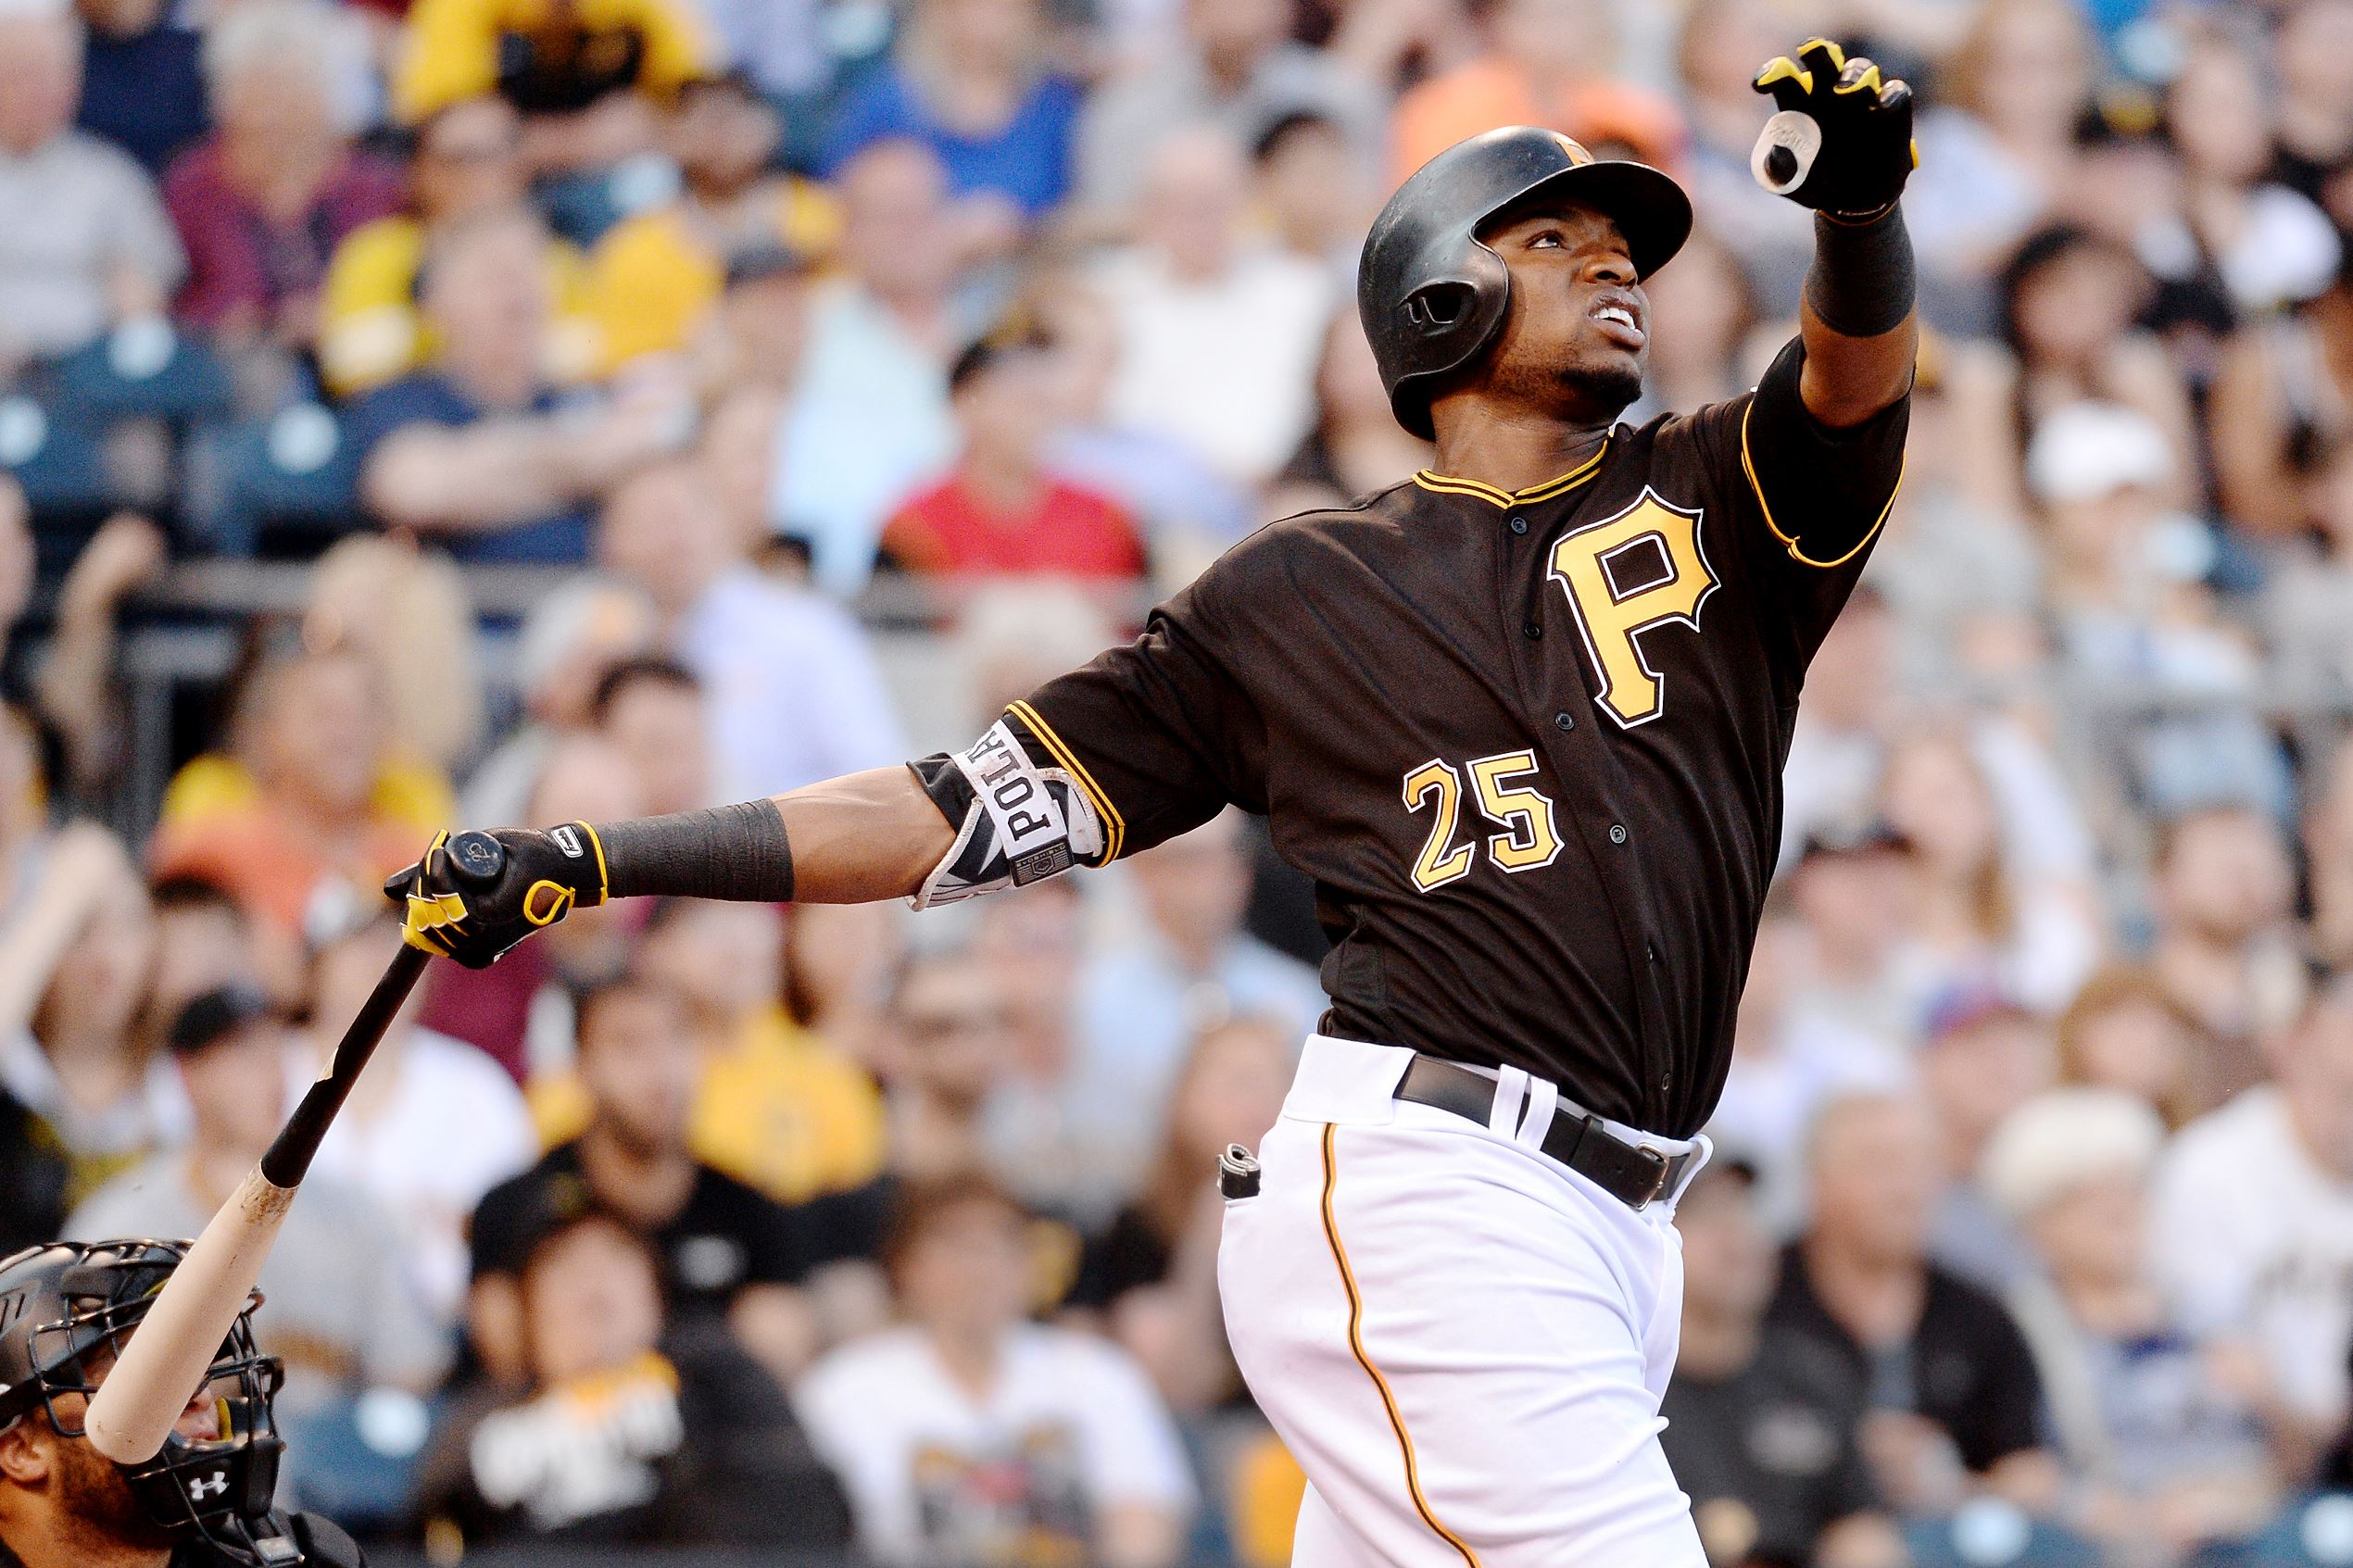 On The Pirates: Polanco showing shades of fellow Dominican Ortiz